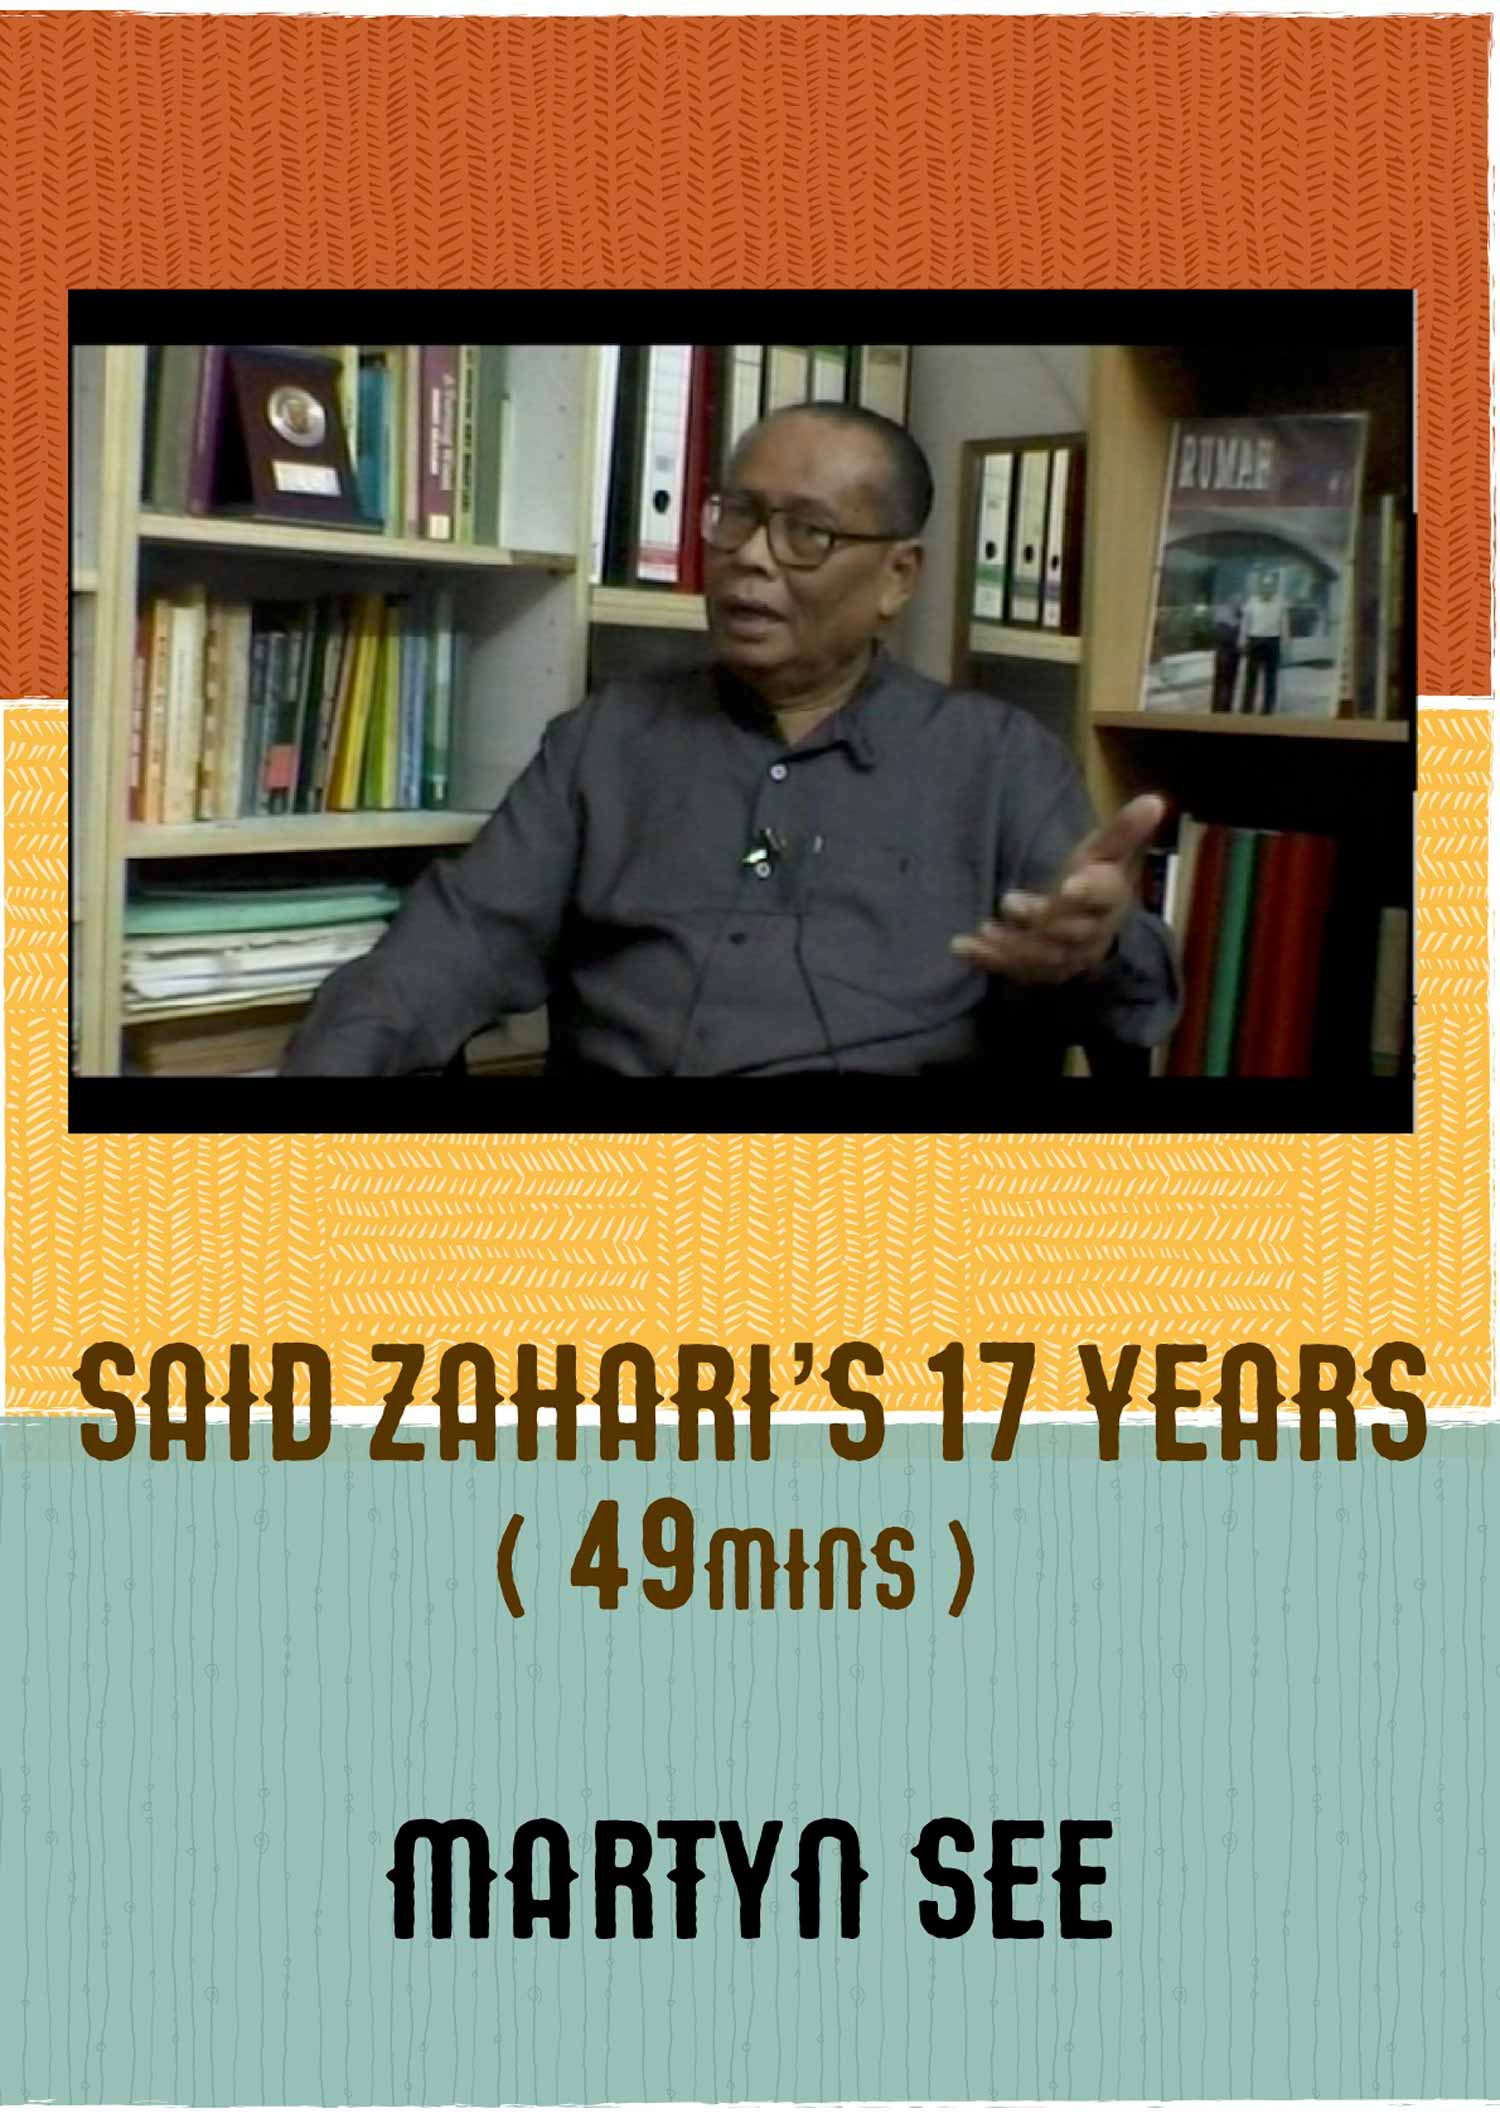 Said Zahari's 17 Years by Martyn See (FreedomFilmFest 2020)